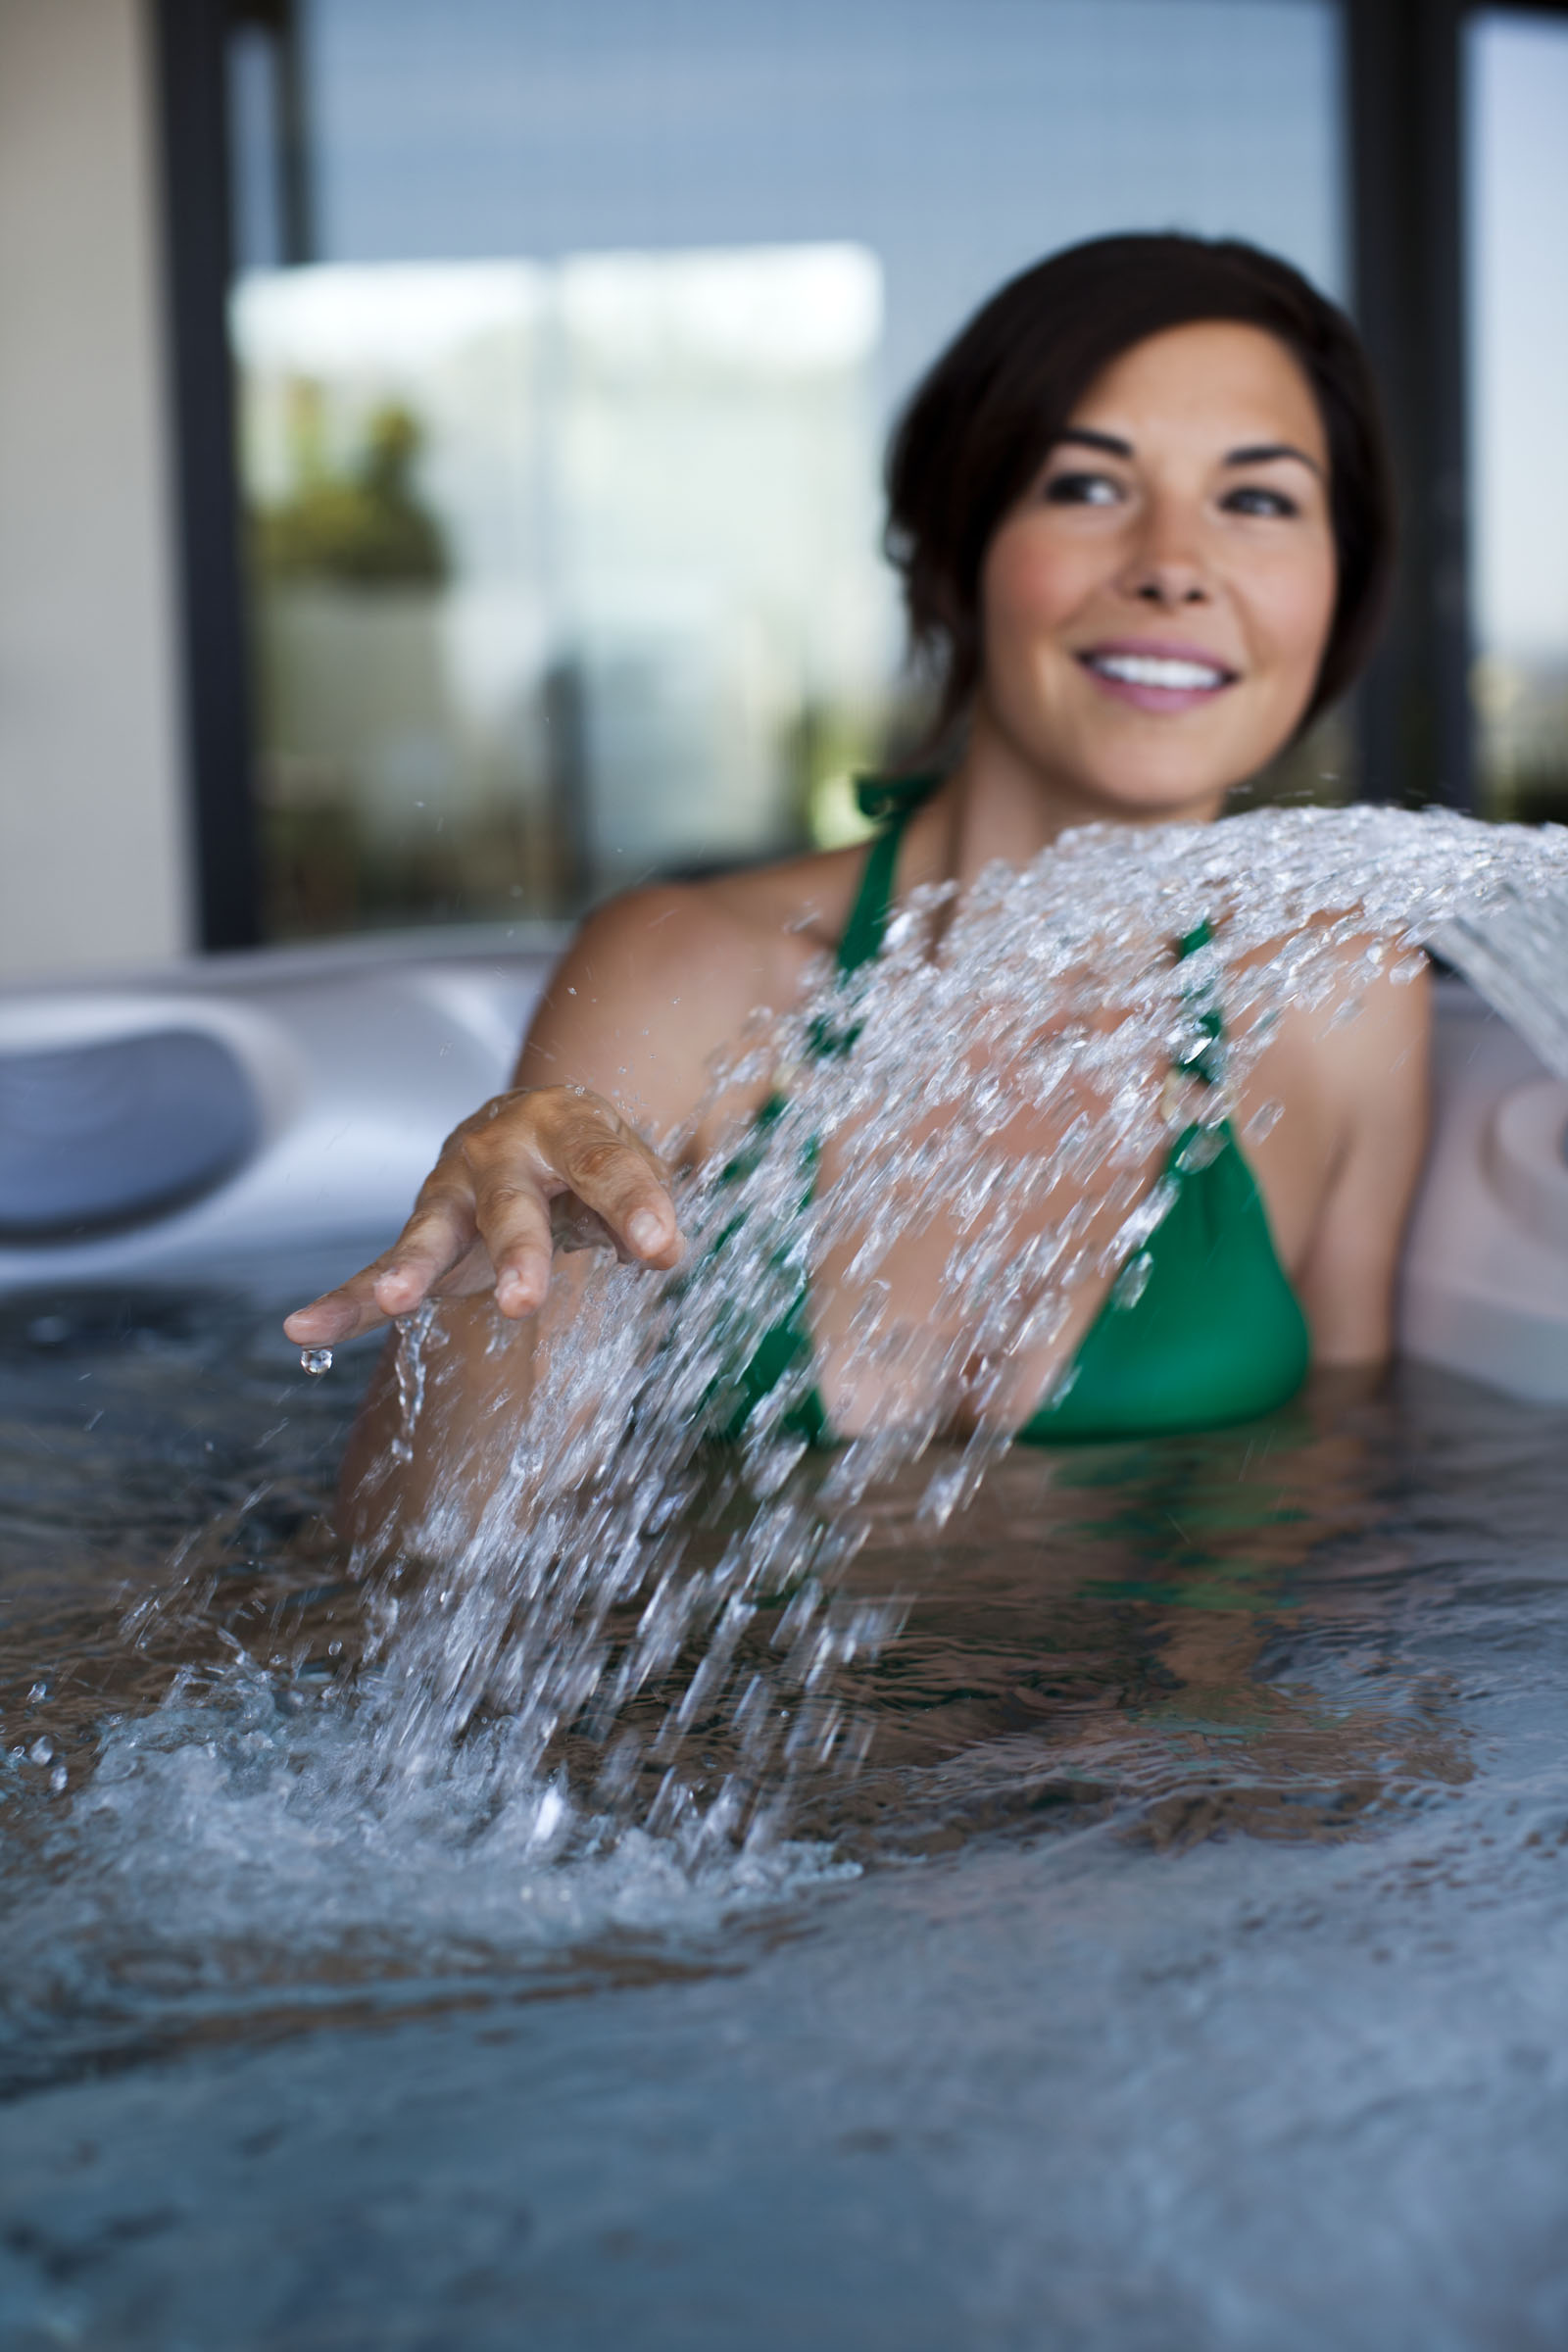 a woman enjoys the waterfall feature of her hot tub